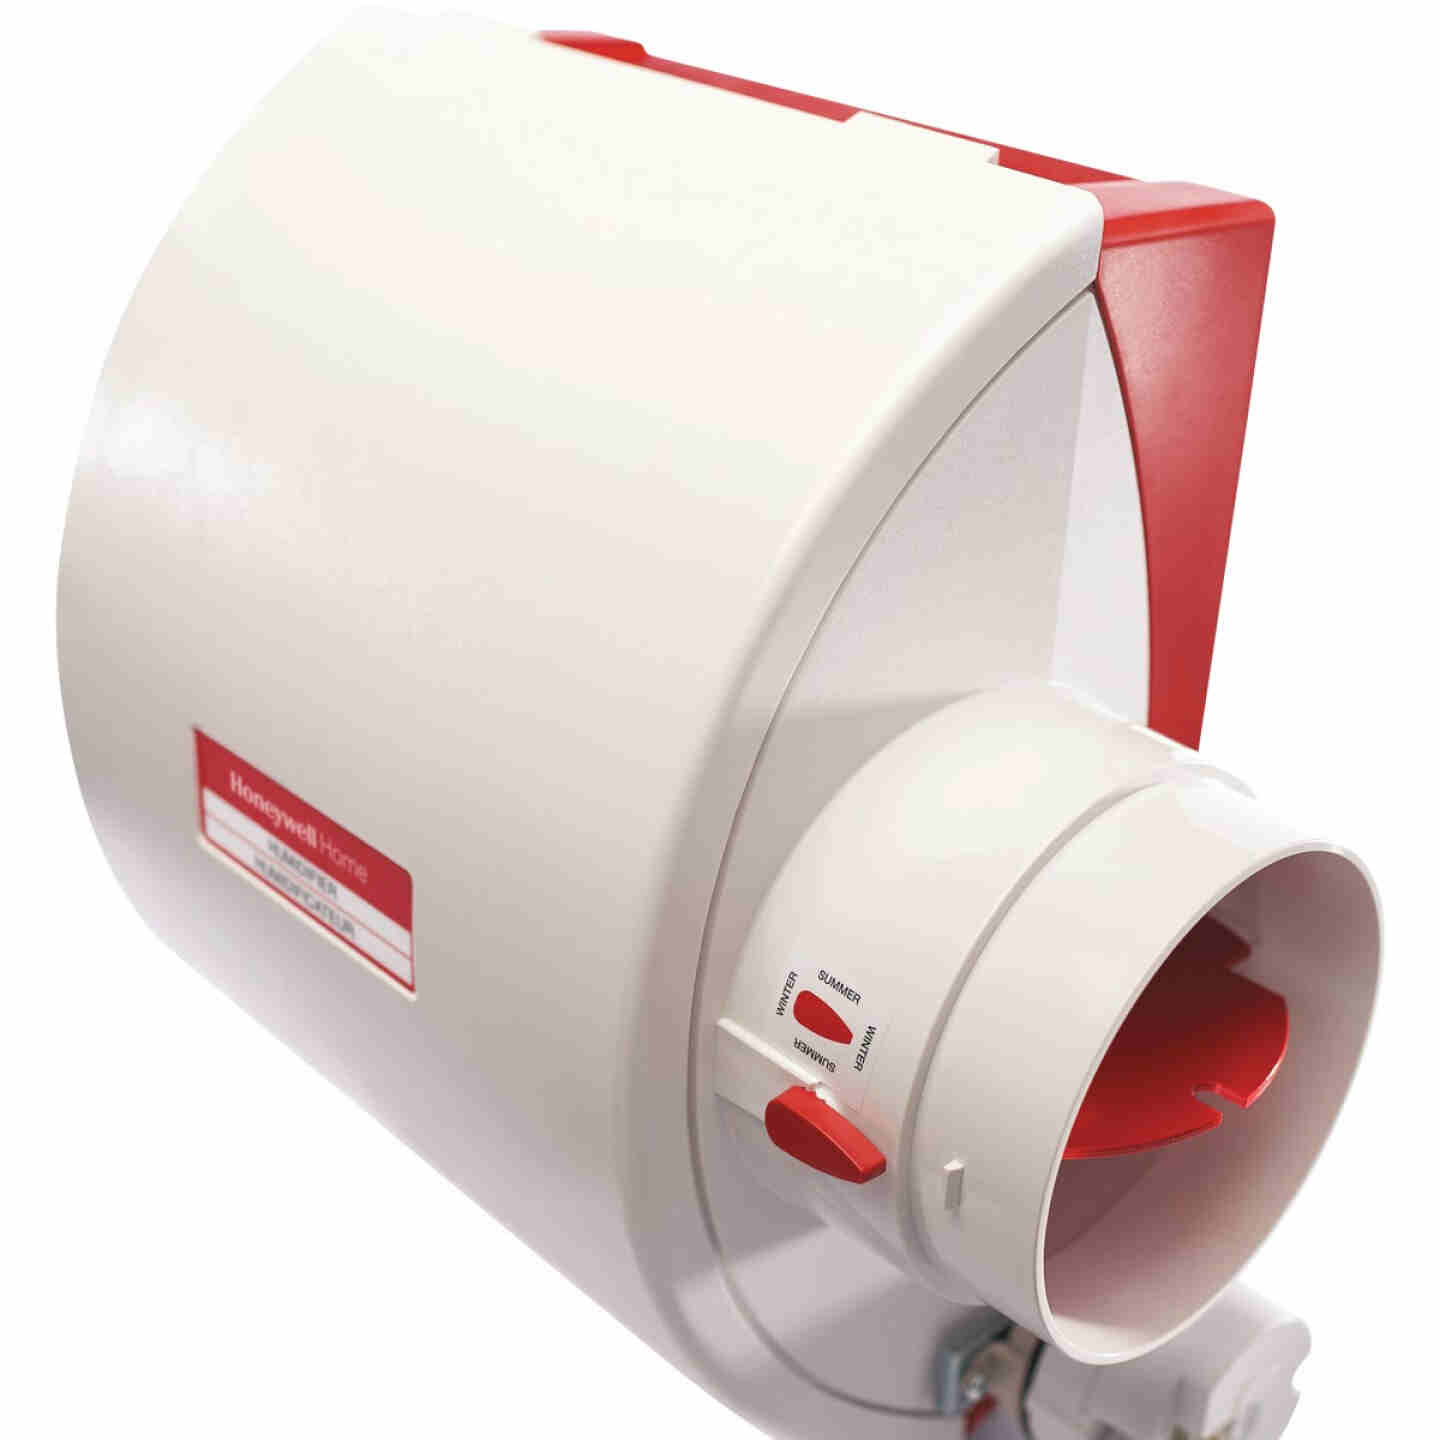 Honeywell Home 12.15 In. W. x 15.68 In. H. x 10.9 In. D. Whole House Flow-Thru Bypass Furnace Humidifier Image 3